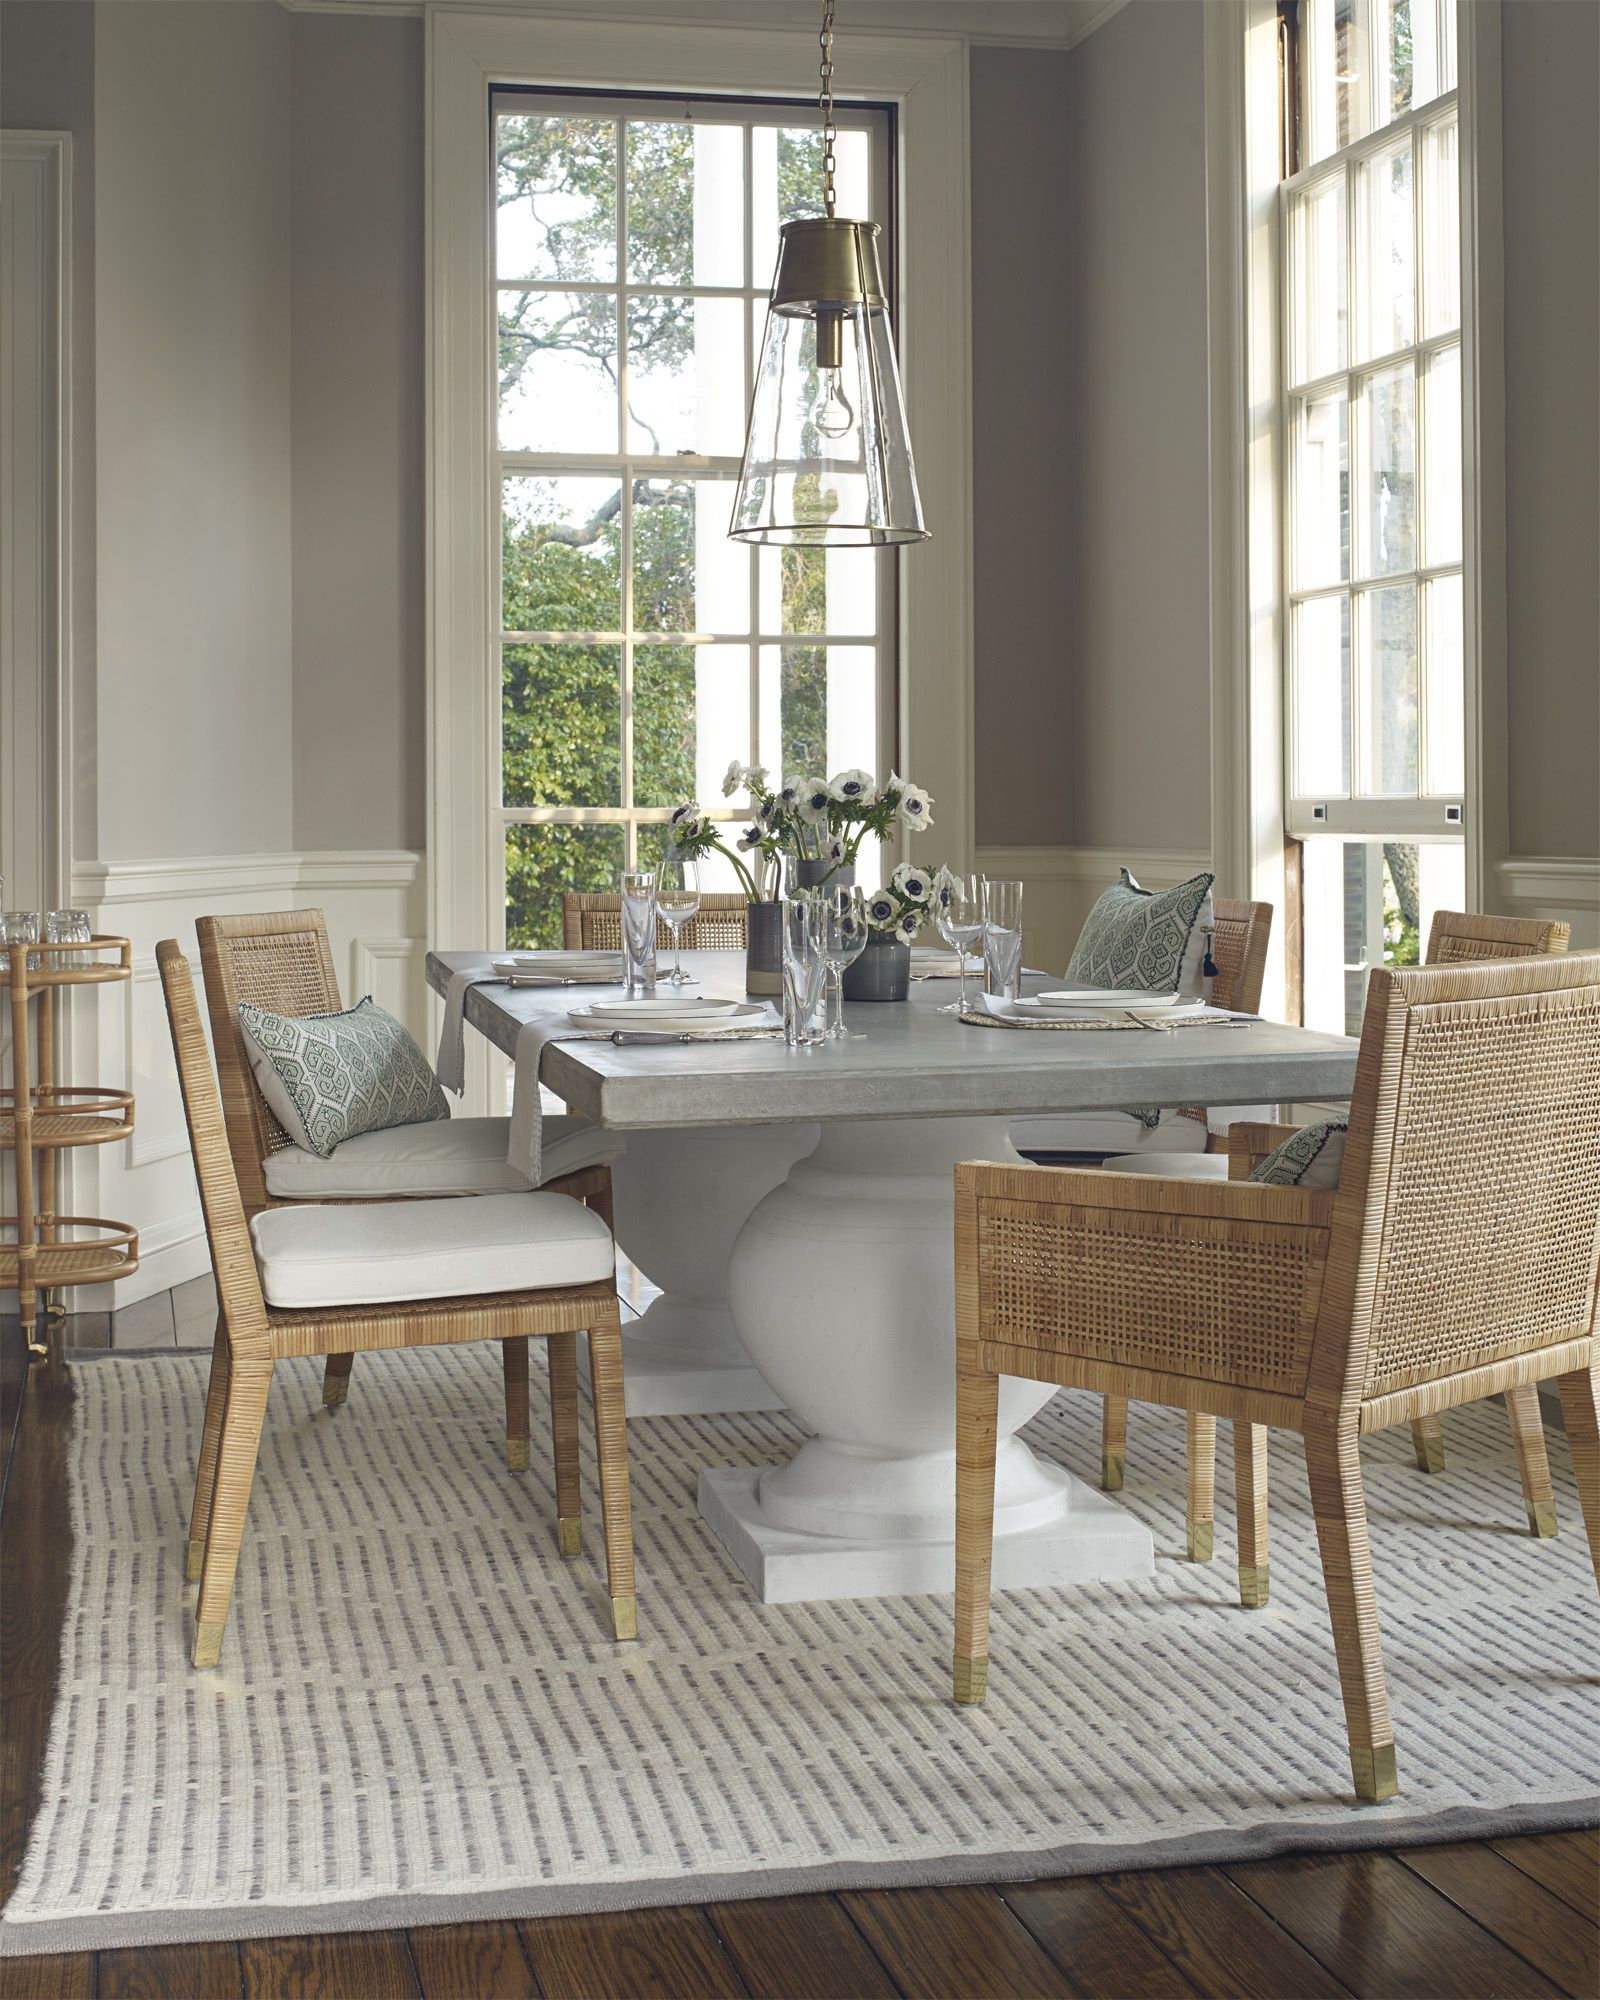 A Luxurious Dining Room Terrace Table And Balboa Chairs Via Serena Lily Luxurybedding